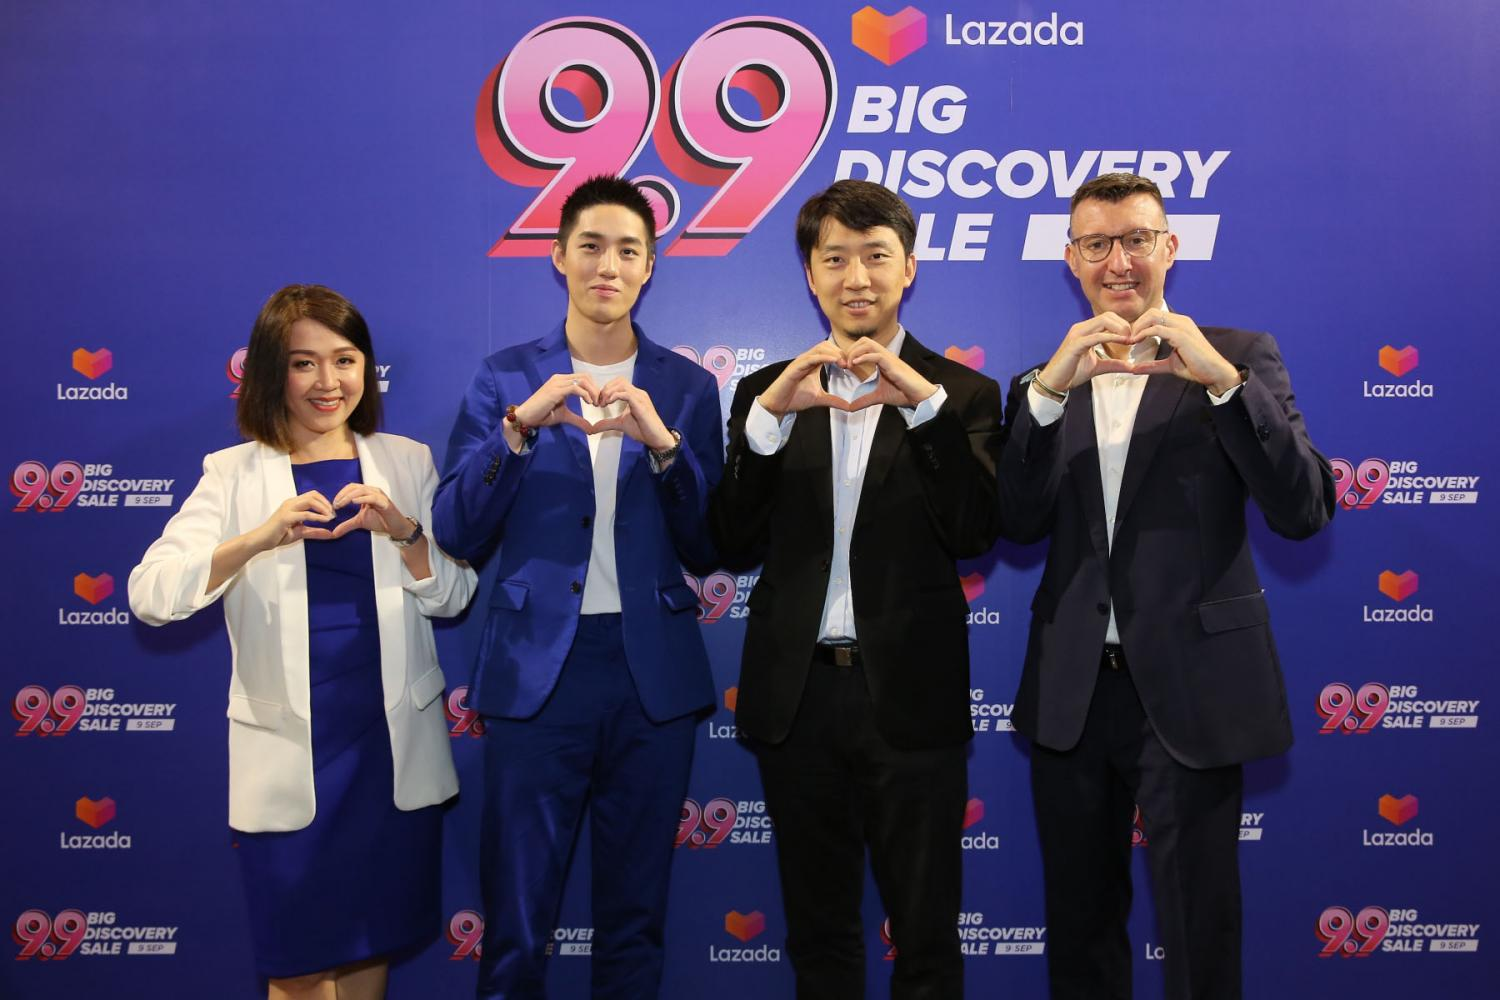 Lazada deputy CEO Jack Zhang (second right) and other executives promote the 9.9 Big Discovery Sale.